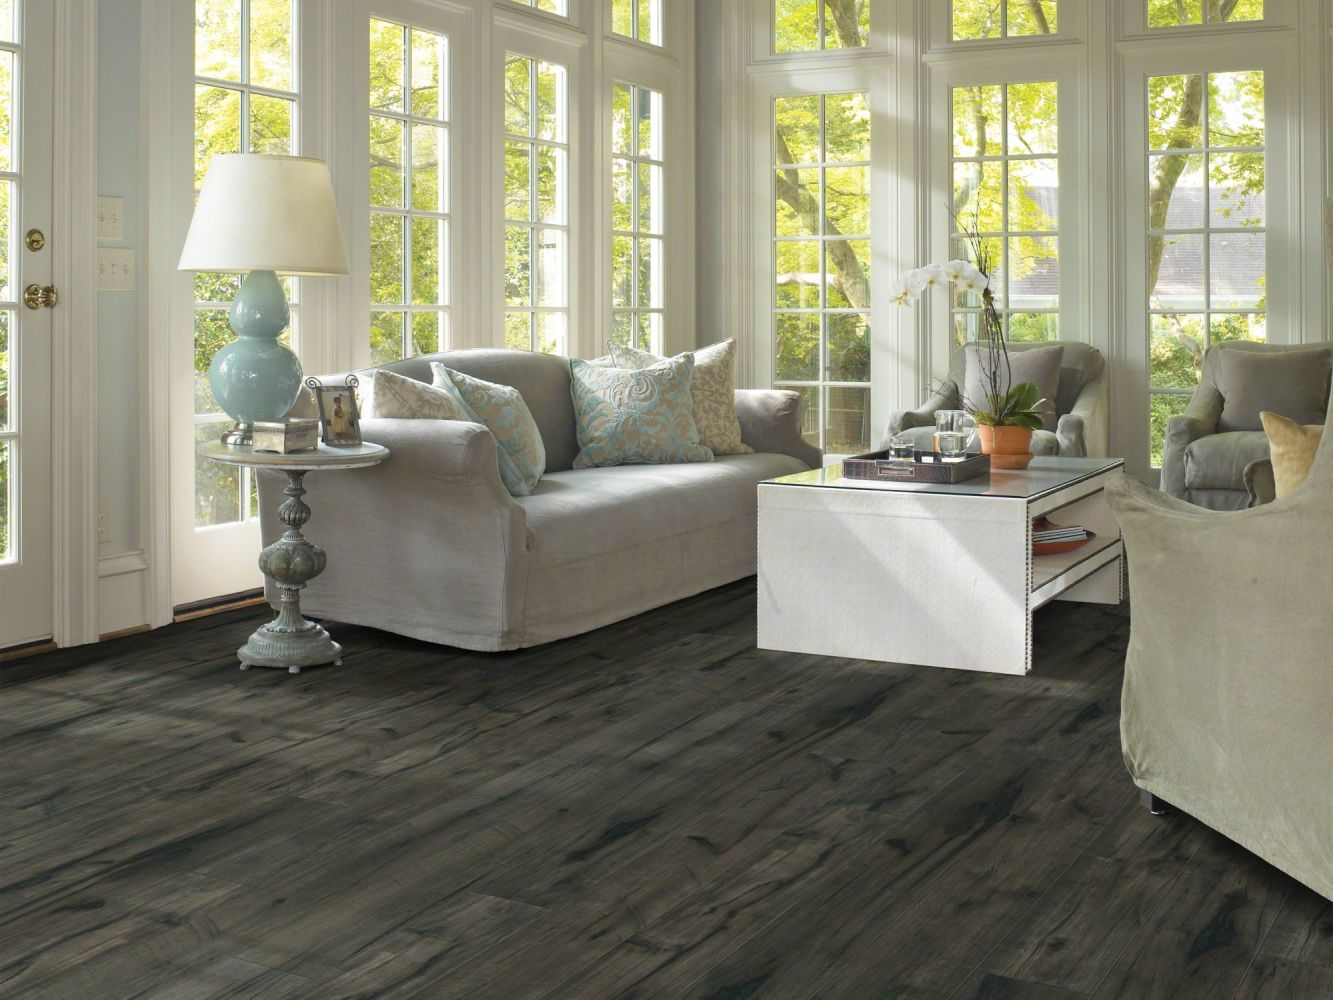 Shaw Floors Versalock Laminate Commend Midnight Hckry 09001_SML03